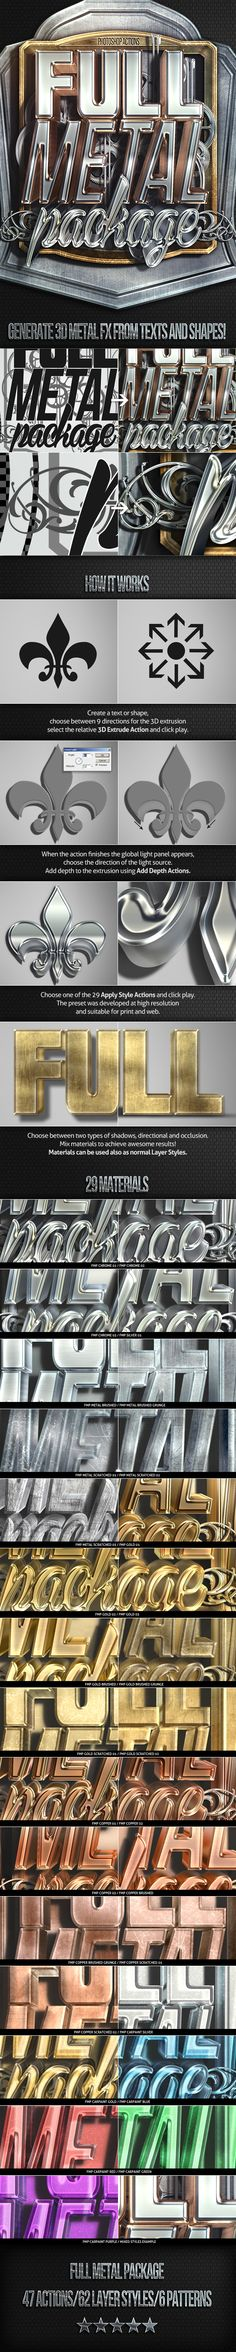 Full Metal Package 3D - Photoshop Actions by Nuwan Panditha, via Behance